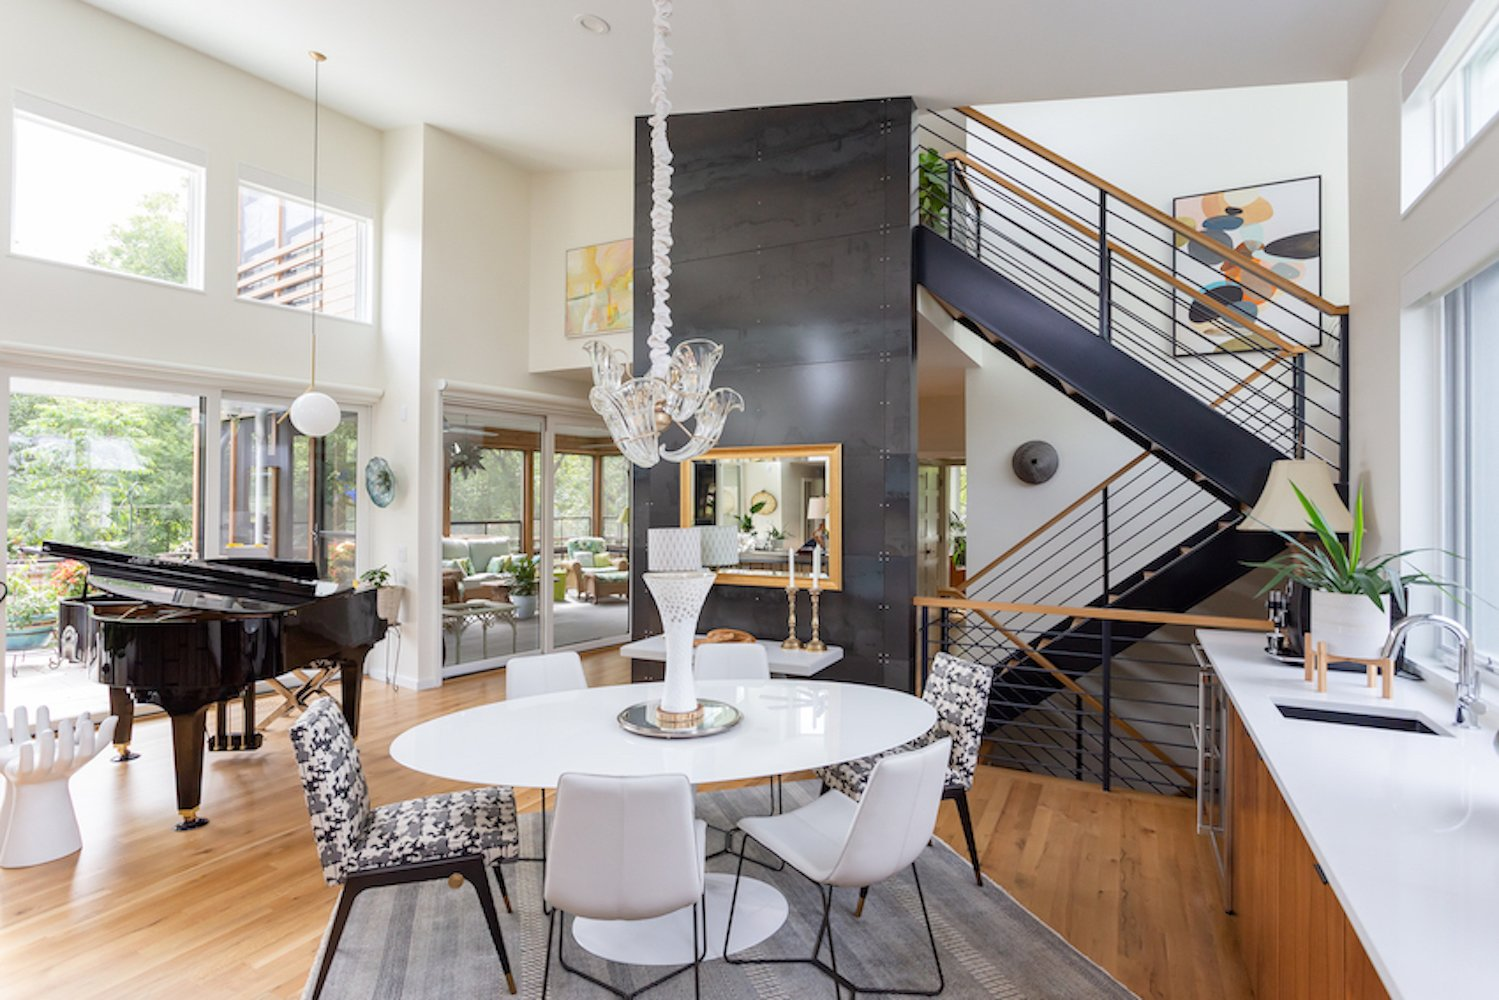 Dining Room, Chair, Table, Light Hardwood Floor, Storage, and Pendant Lighting Beyond the dining space, an open staircase provides vertical circulation.  The Thomas Residence